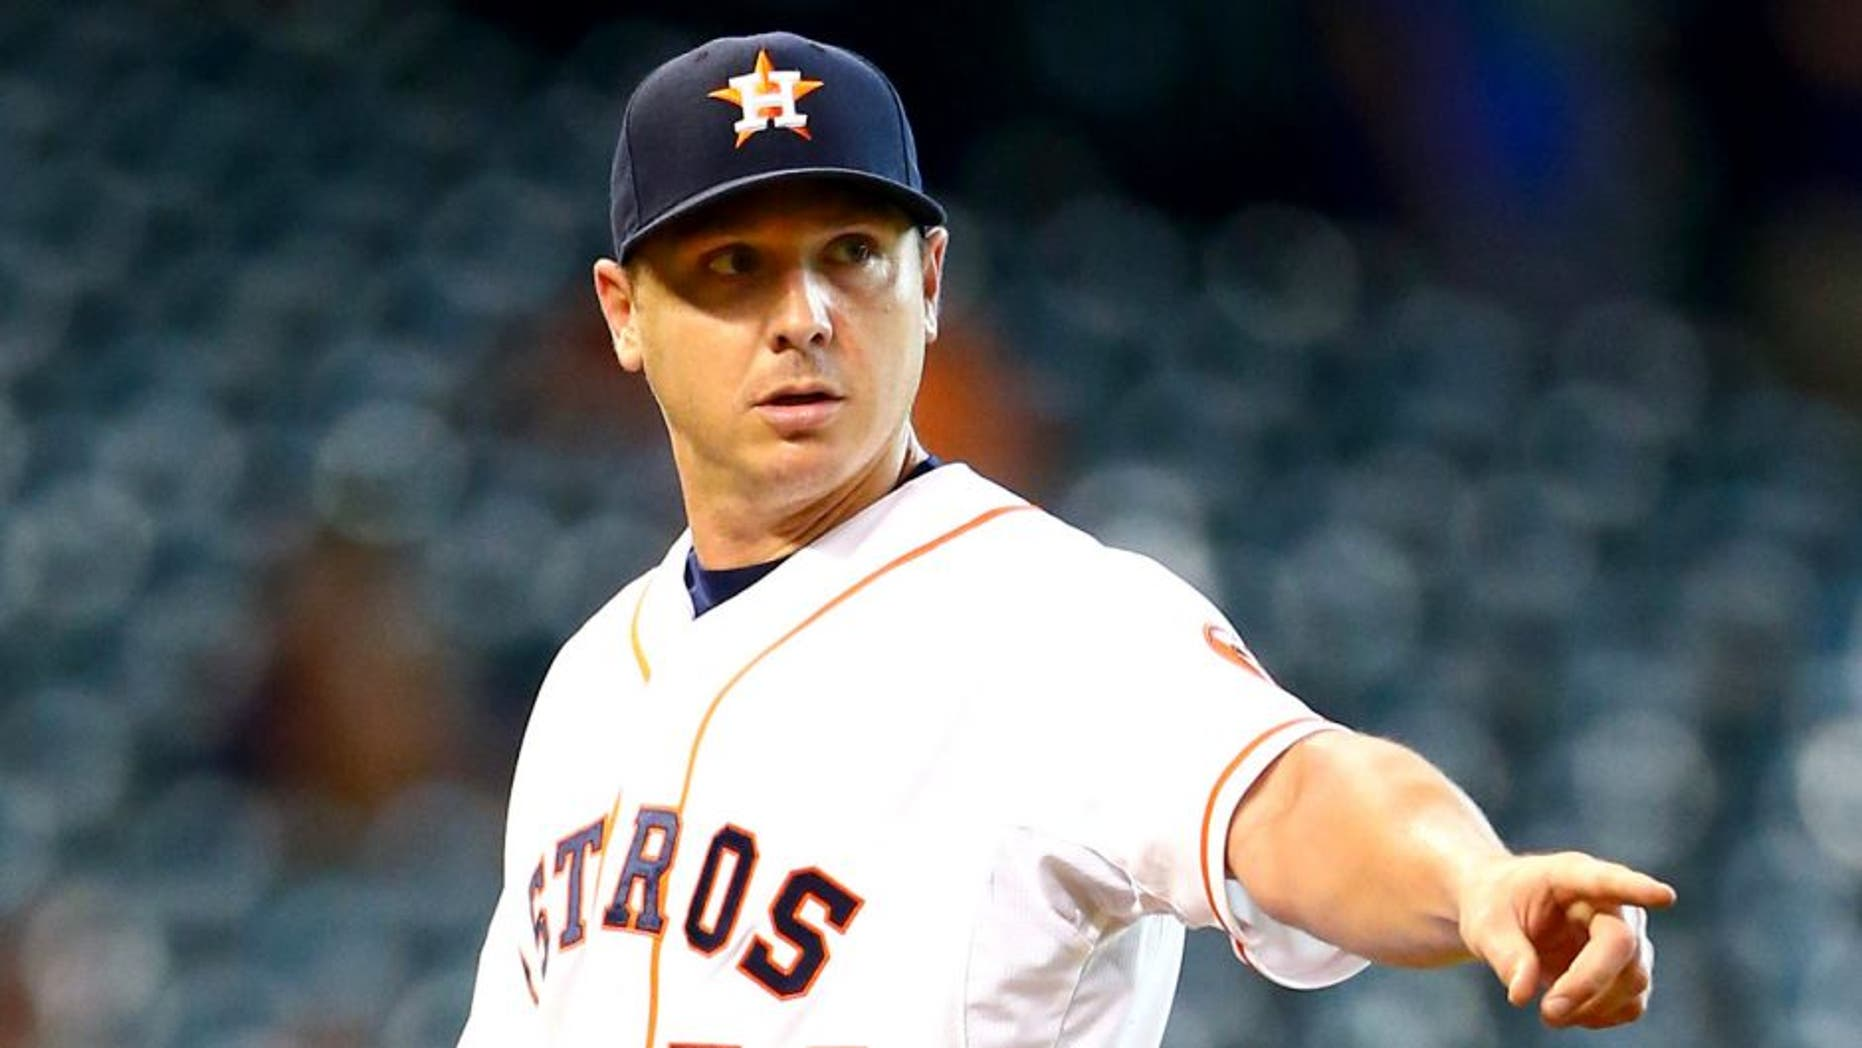 Aug 17, 2015; Houston, TX, USA; Houston Astros pitcher Scott Kazmir reacts in the first inning against the Tampa Bay Rays at Minute Maid Park. Mandatory Credit: Mark J. Rebilas-USA TODAY Sports